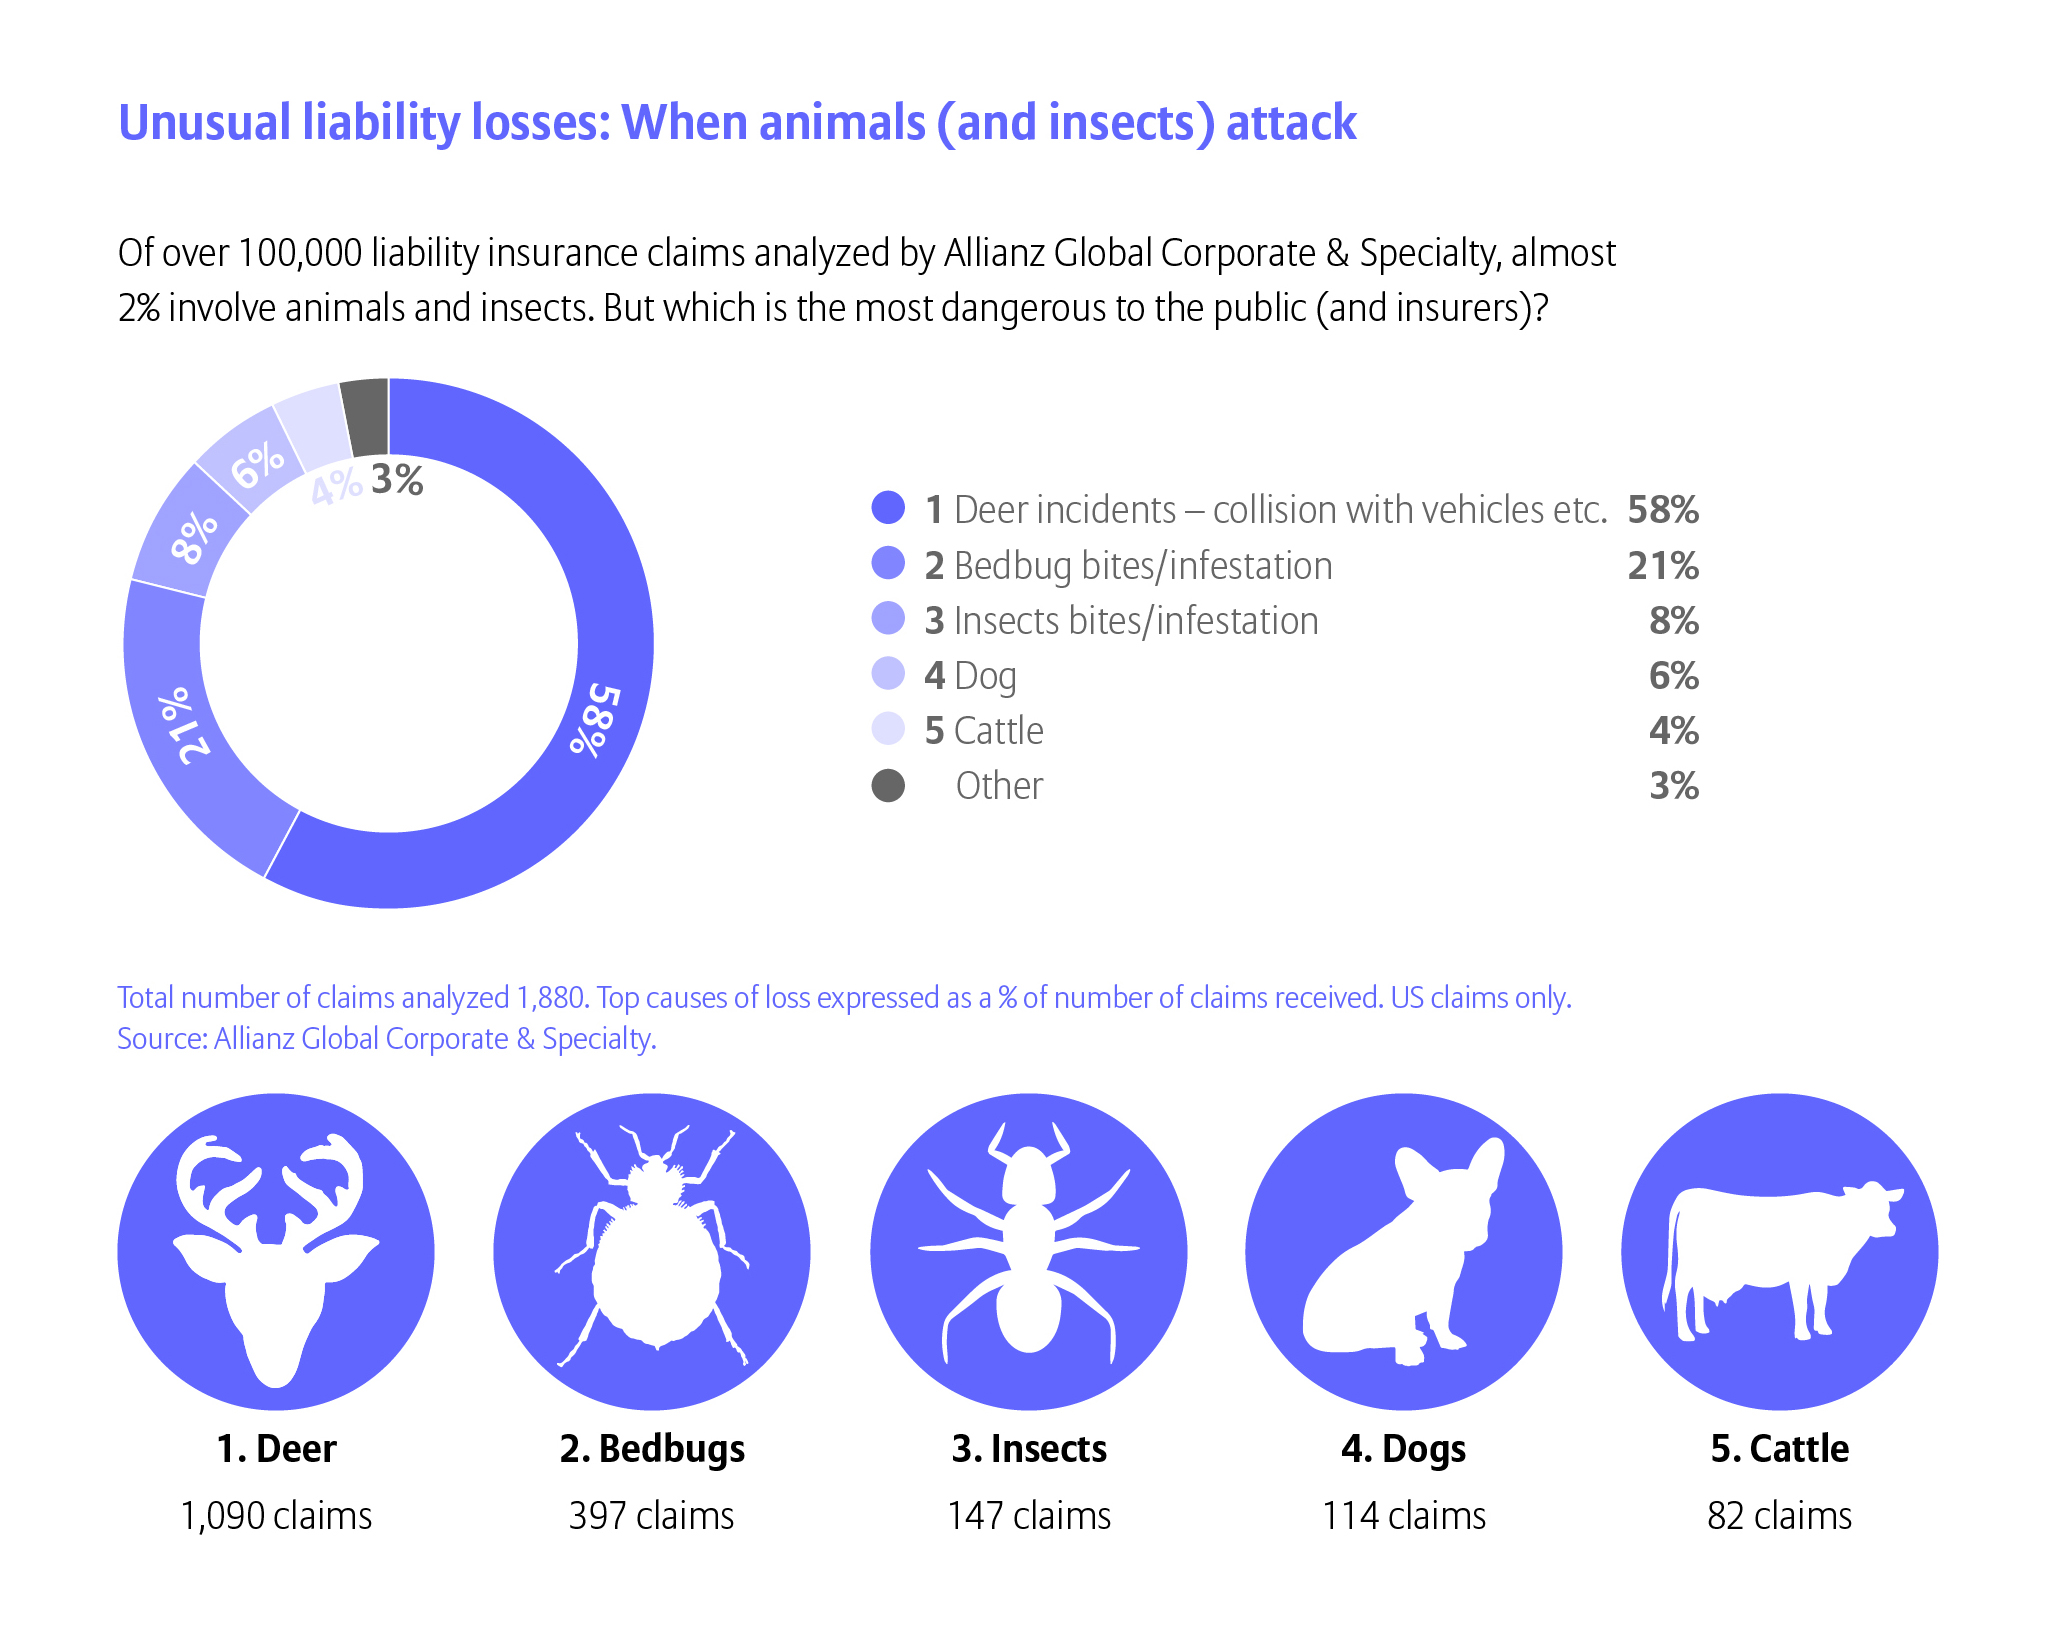 Unusual liability losses: When animals (and insects) attack